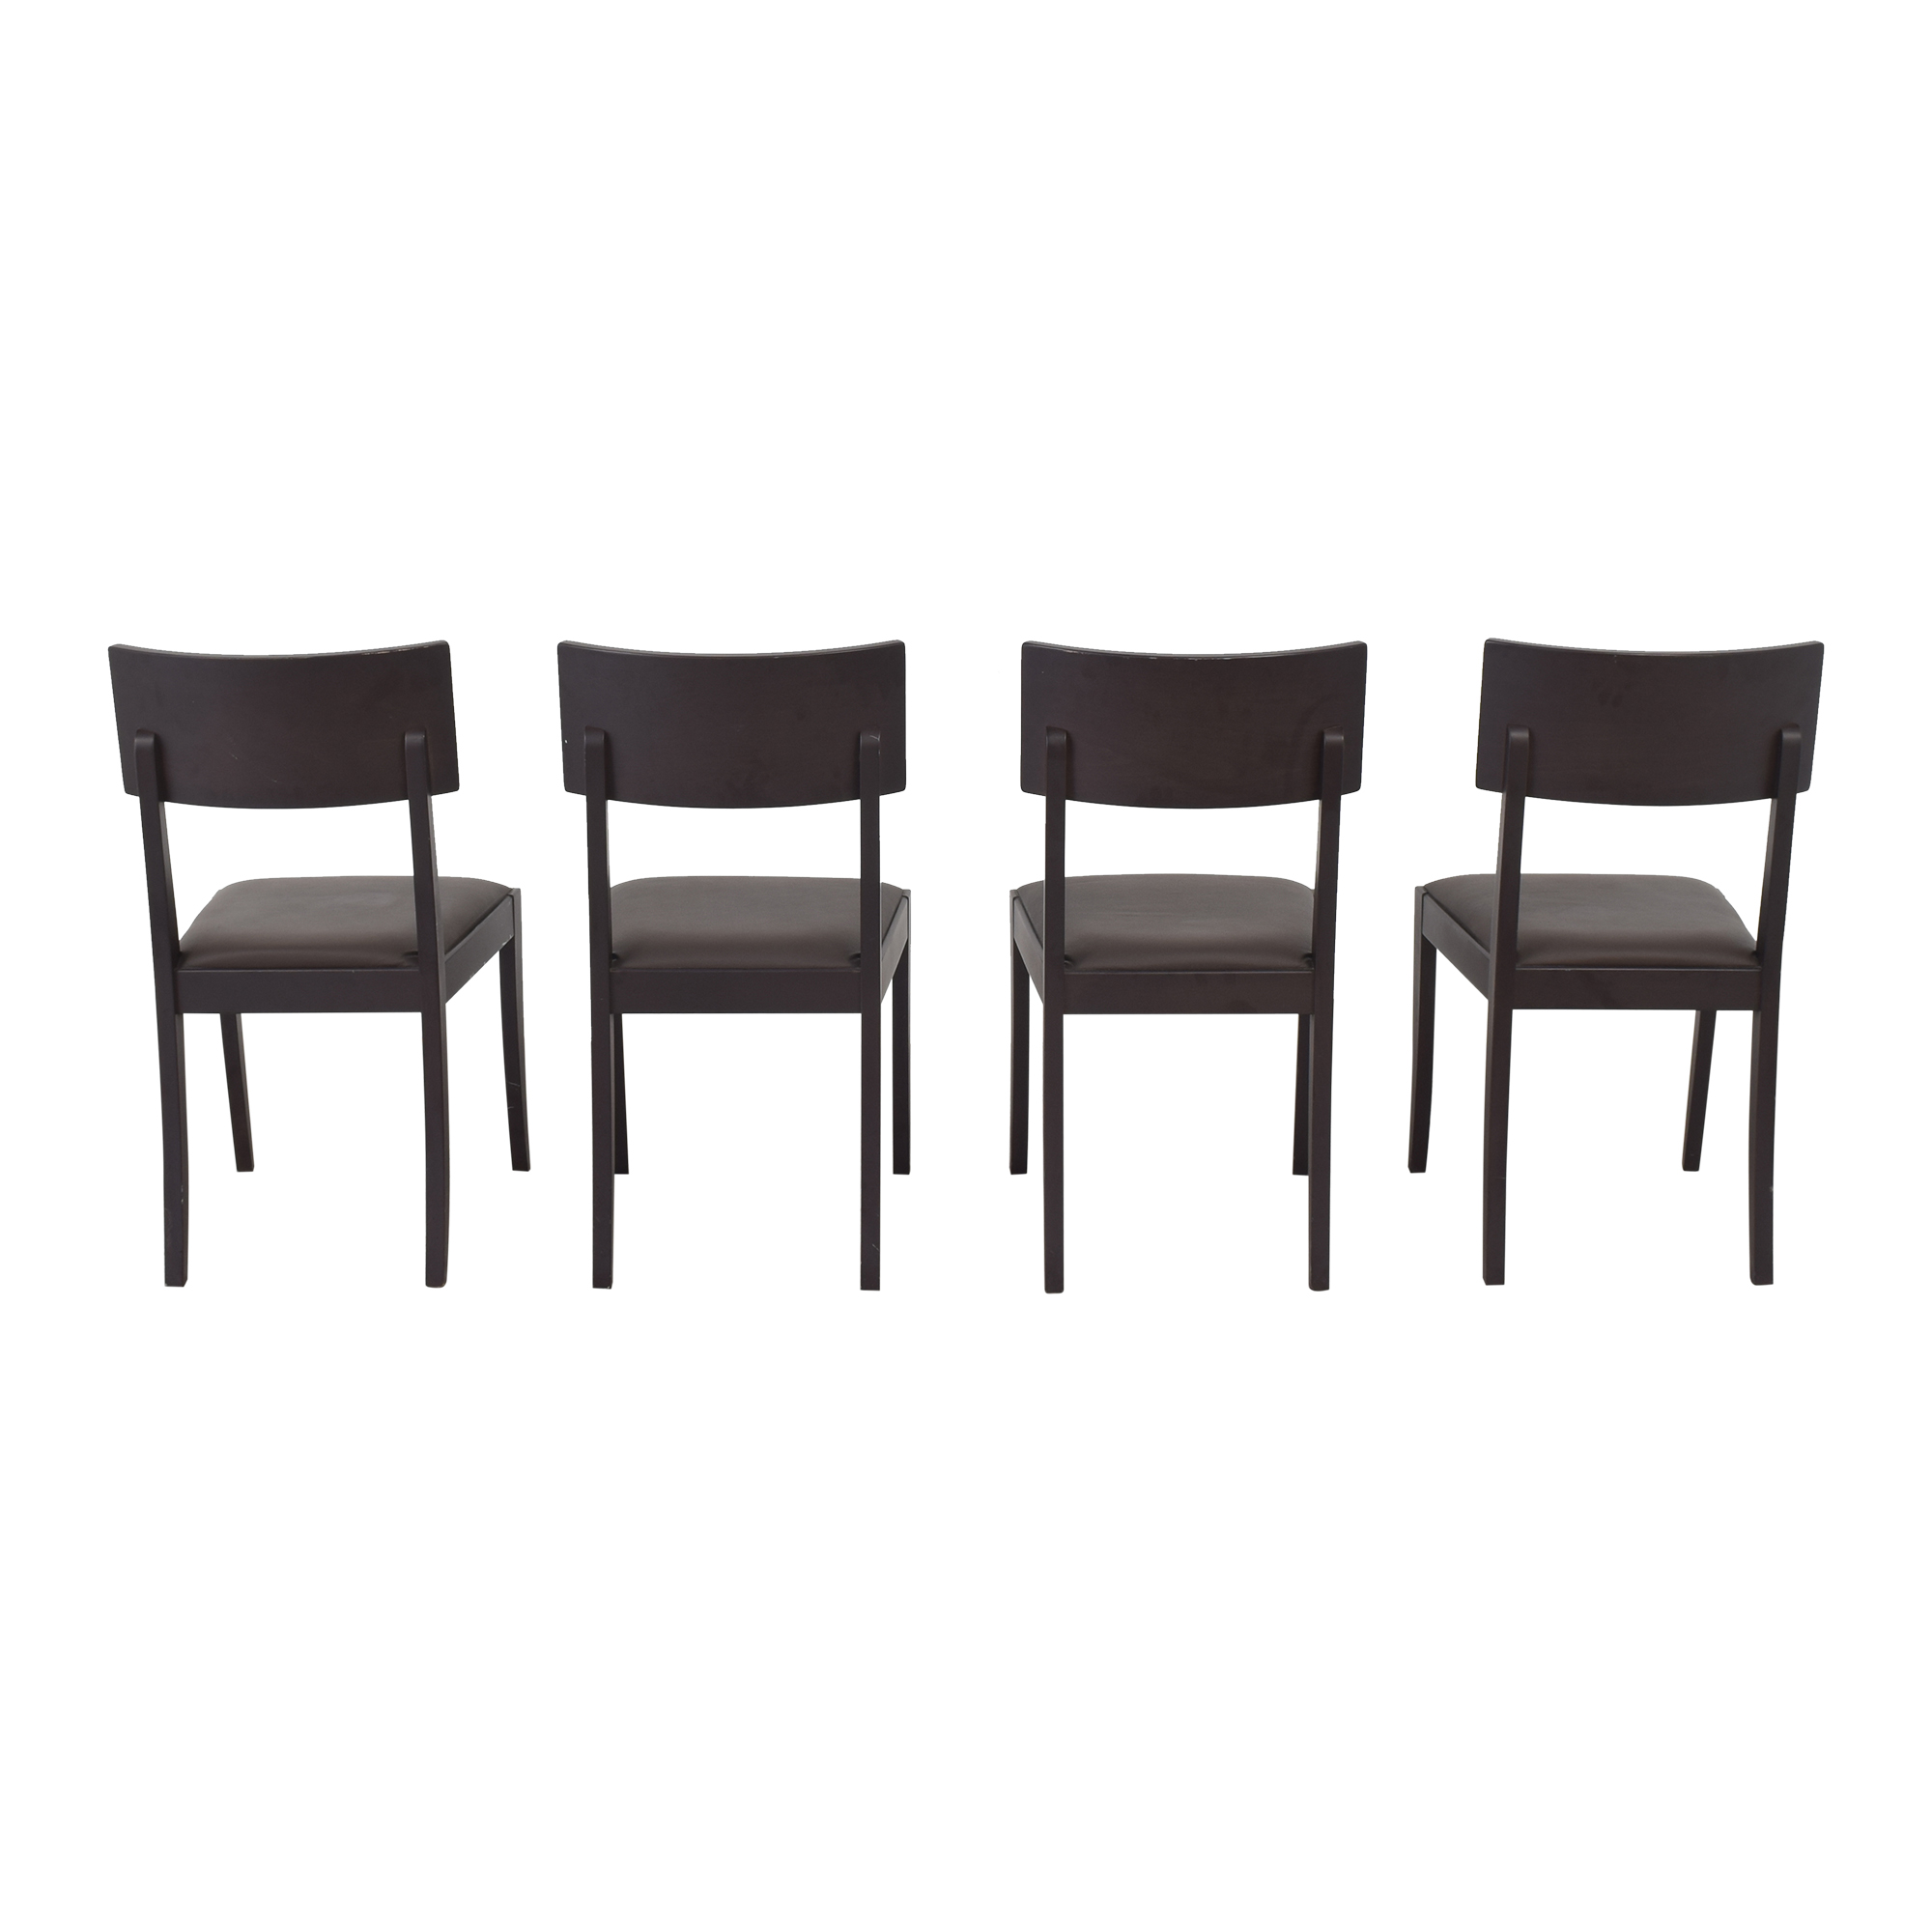 shop Crate & Barrel Crate & Barrel Dining Chairs online